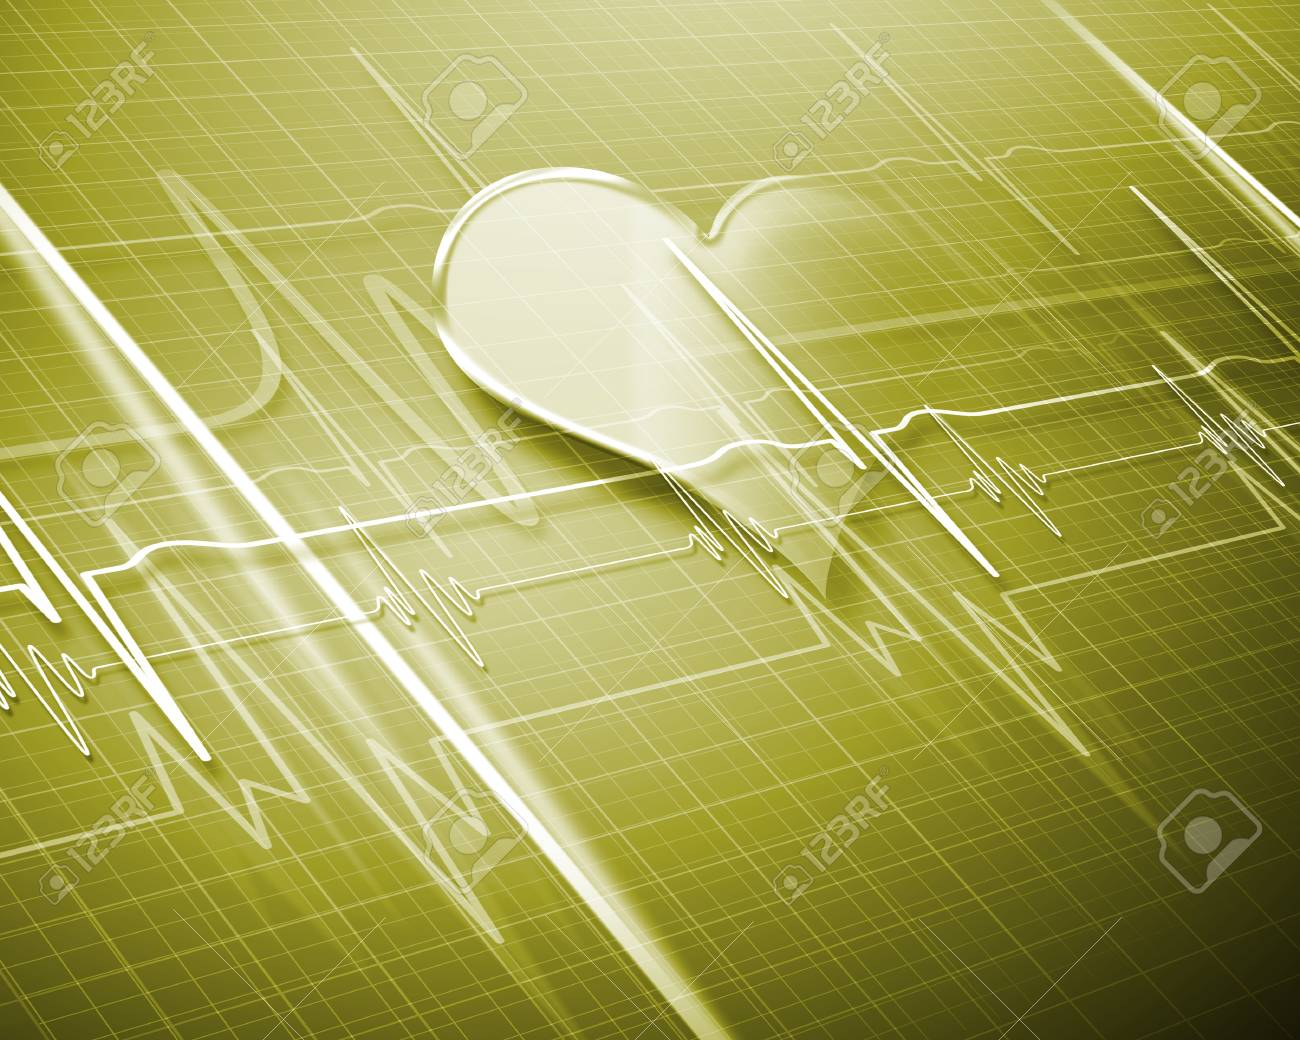 Image of heart beat picture on a colour background Stock Photo - 14911707